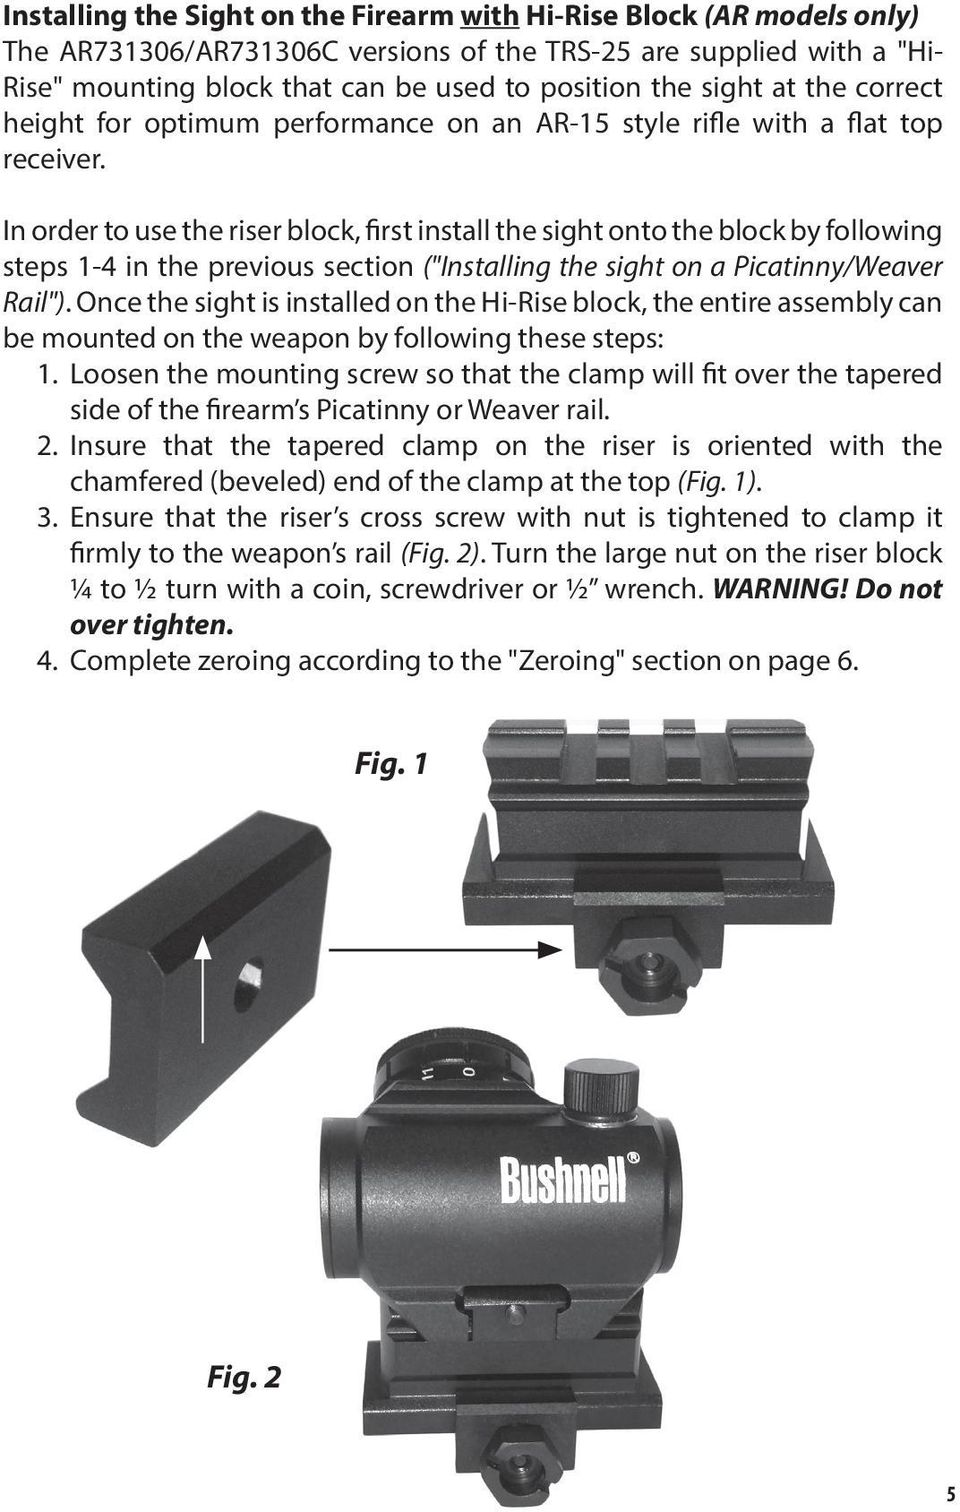 "In order to use the riser block, first install the sight onto the block by following steps 1-4 in the previous section (""Installing the sight on a Picatinny/Weaver Rail"")."